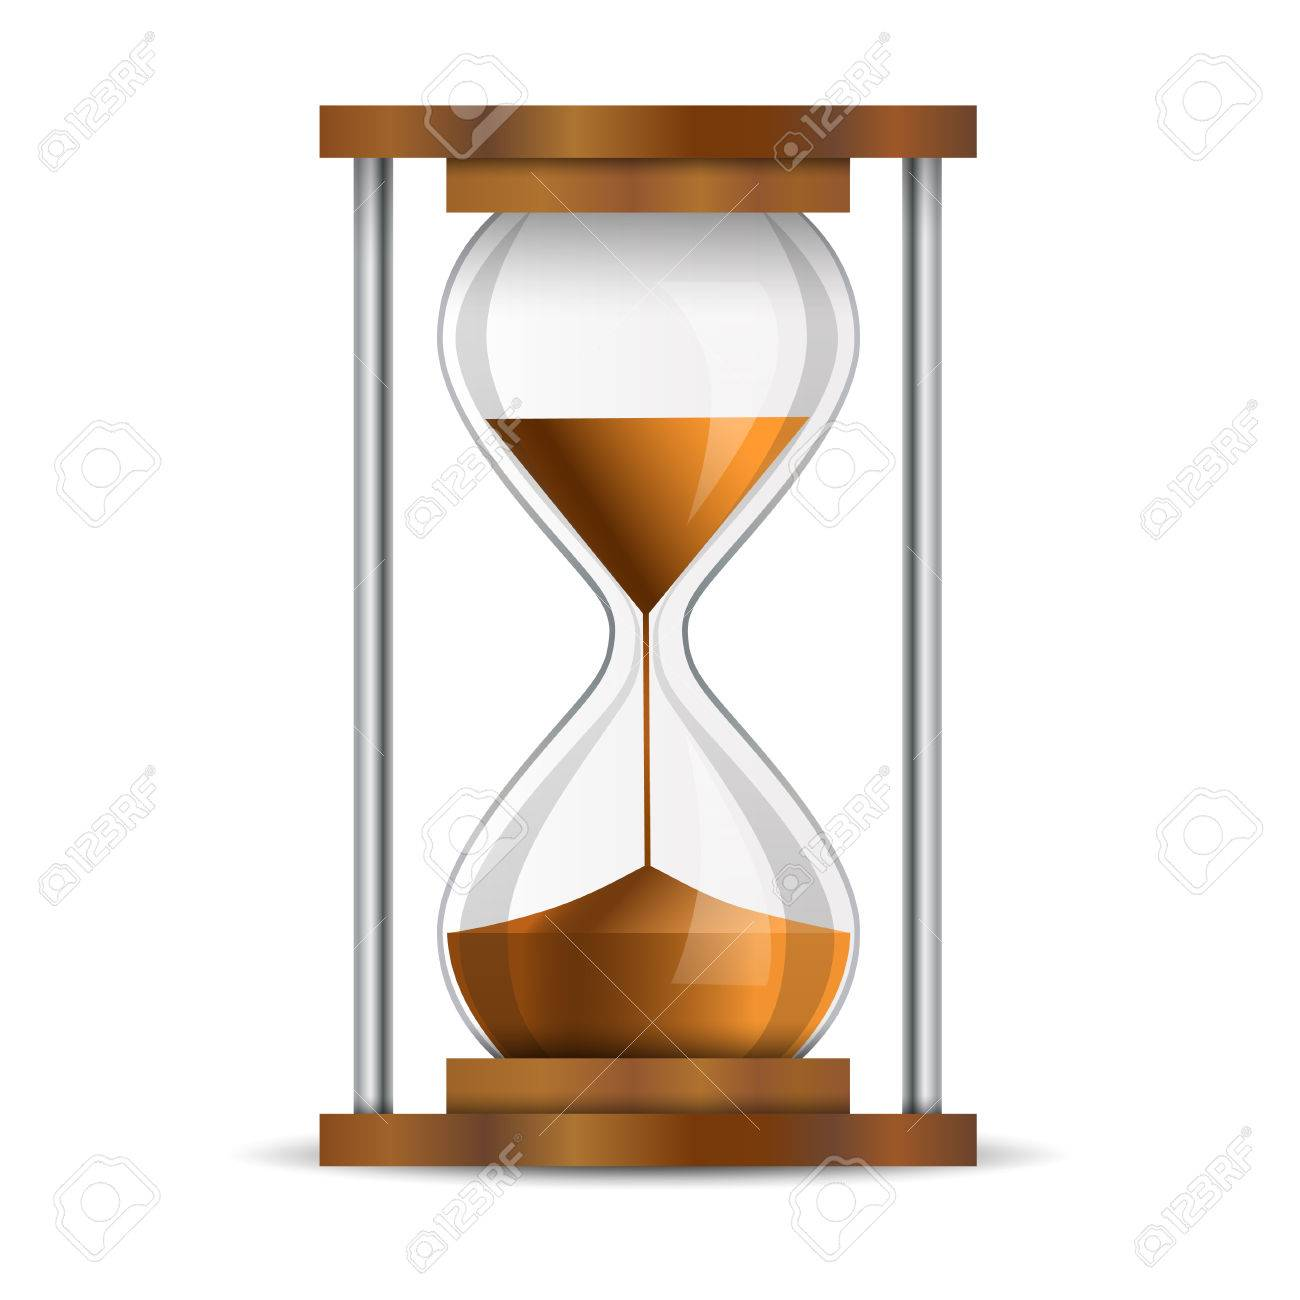 sand timer art. true transparent sand hourglass isolated on white background simple and elegant sandglass timer art